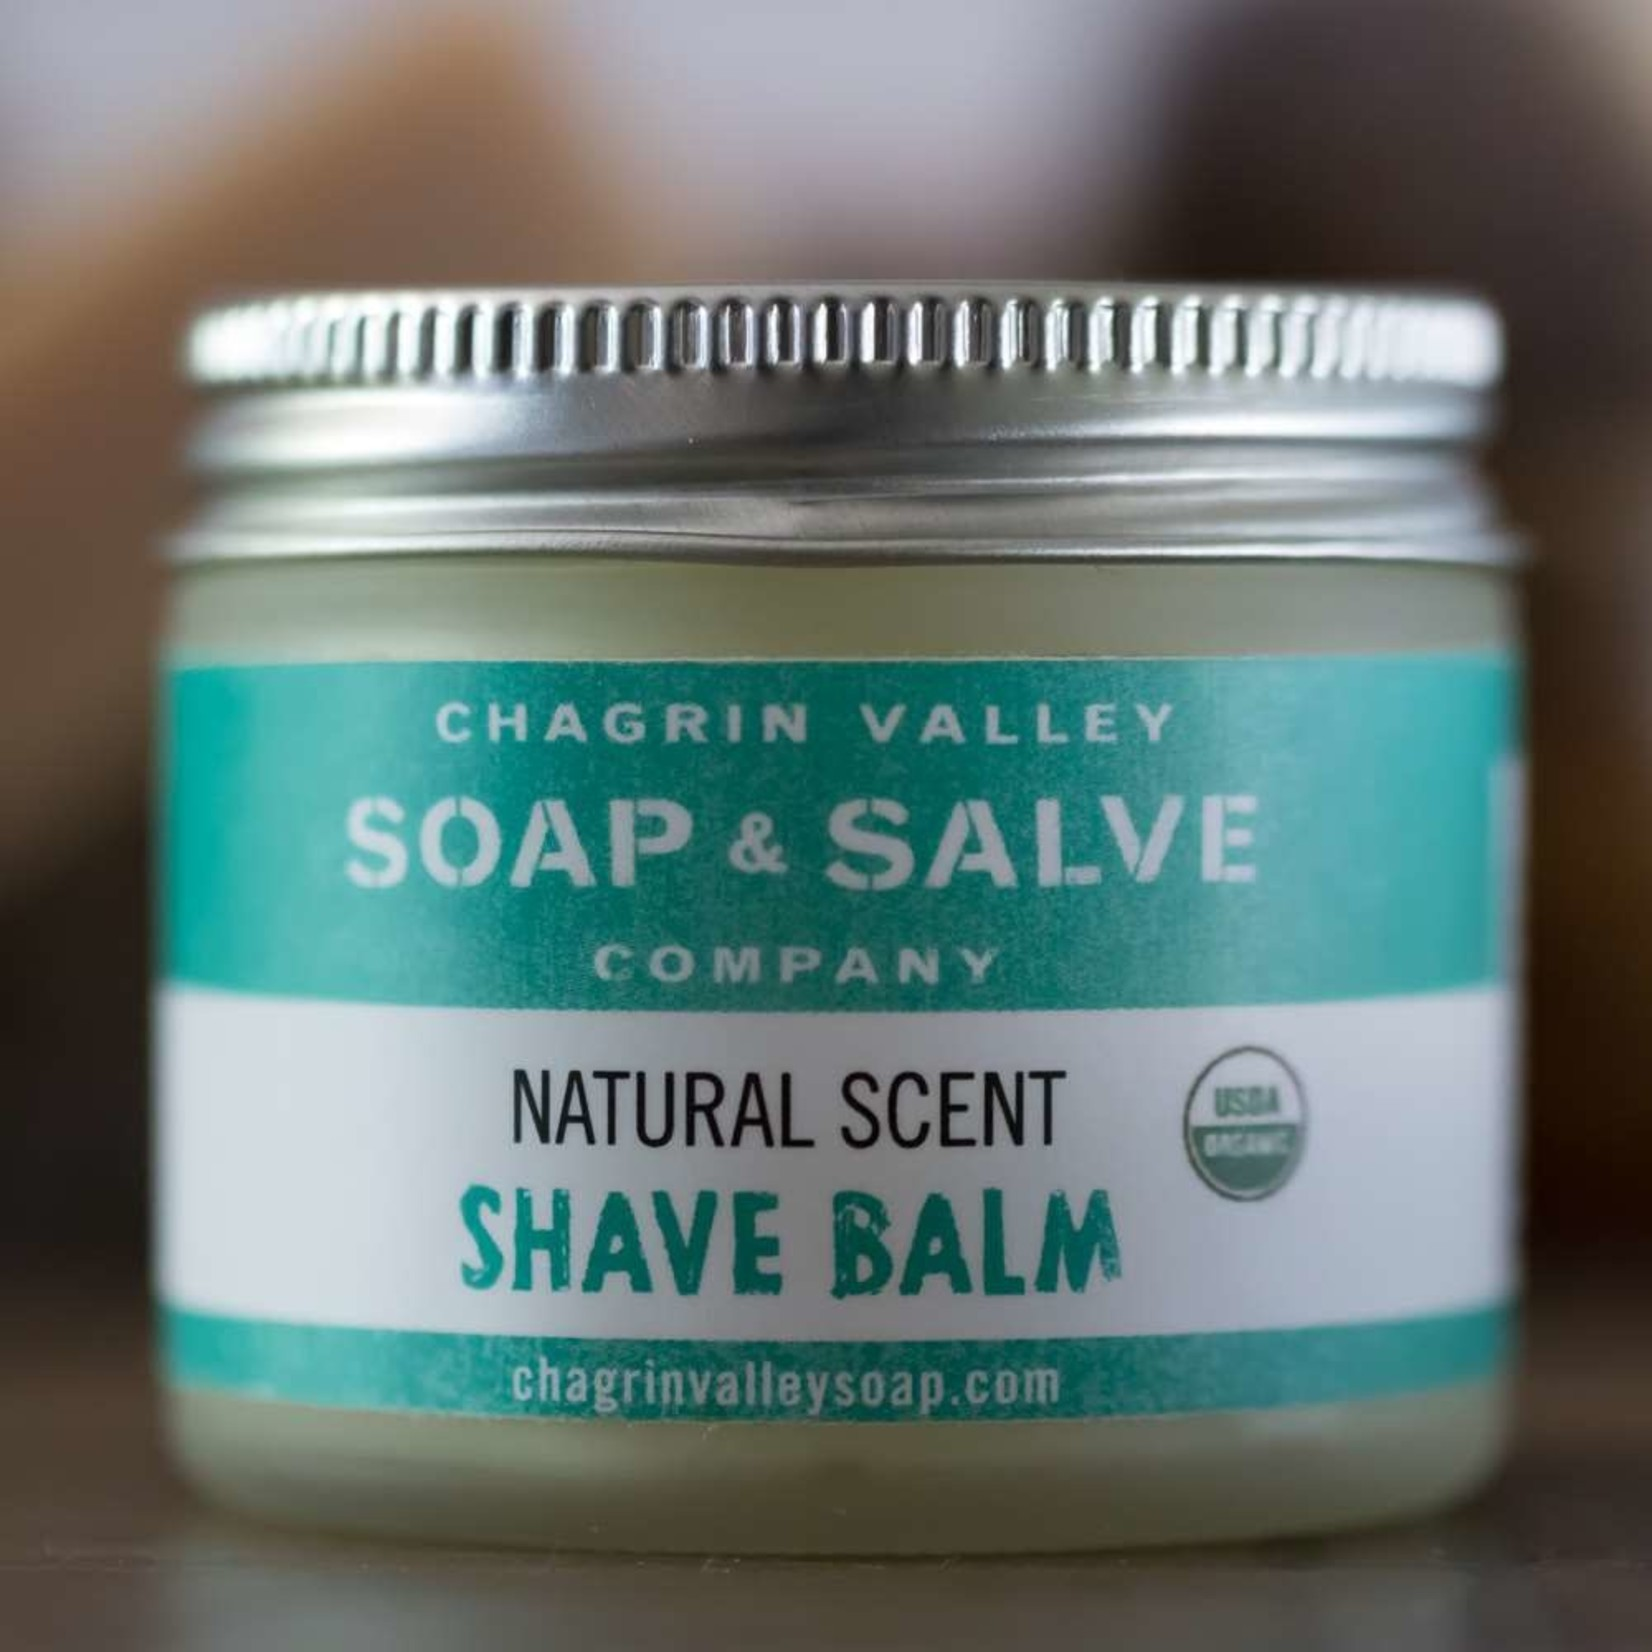 Chagrin Valley Soap and Salve Natural Scent Shave Balm 2.2oz Jar